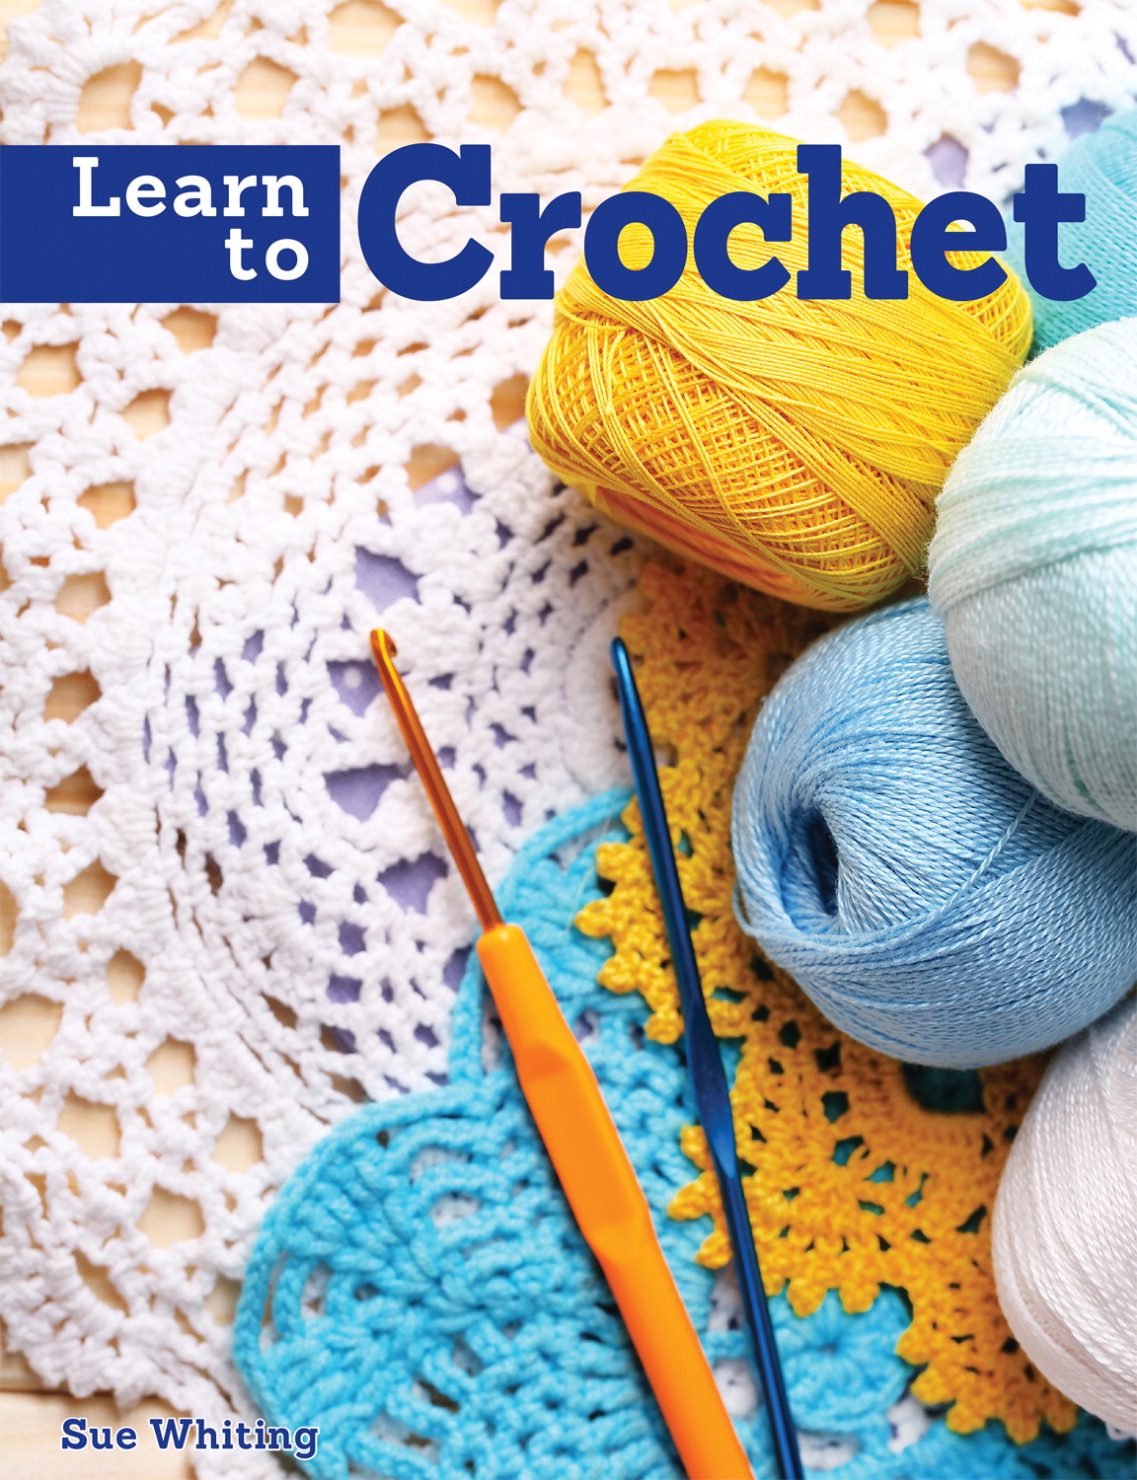 IMM Lifestyle Learn to Crochet Book